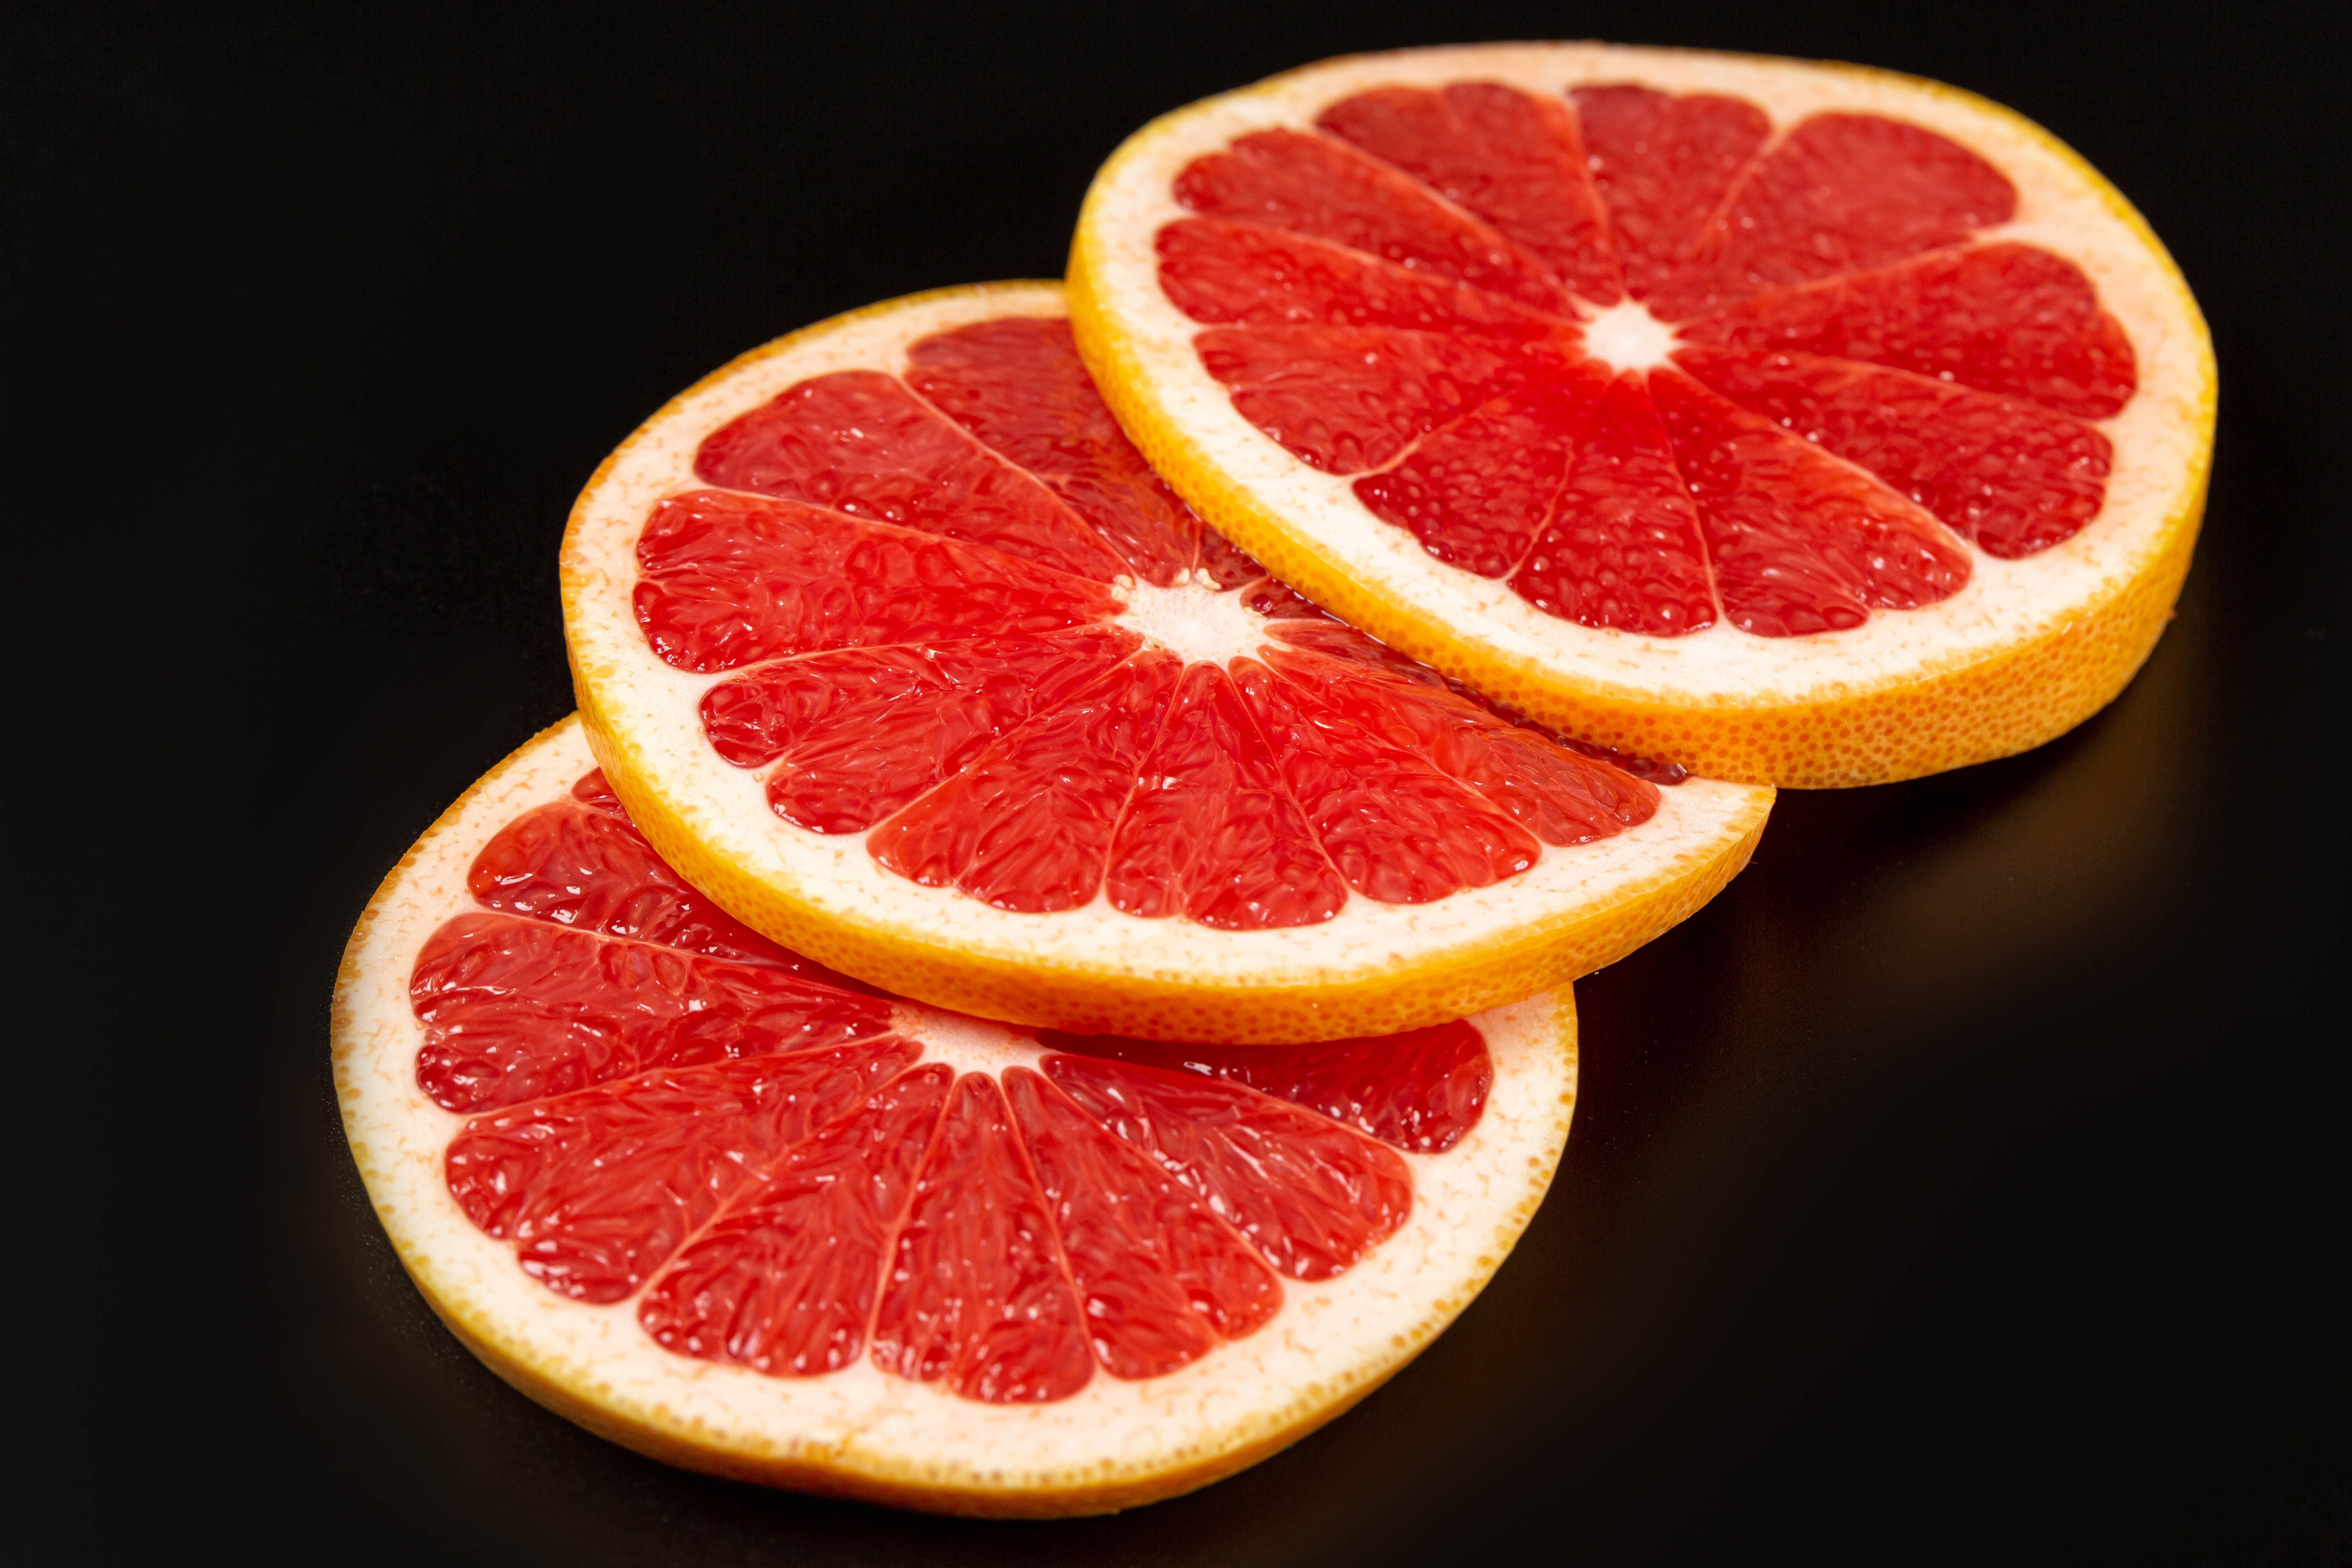 58969 download wallpaper Food, Fruit, Citrus, Lobules, Slices, Grapefruit screensavers and pictures for free